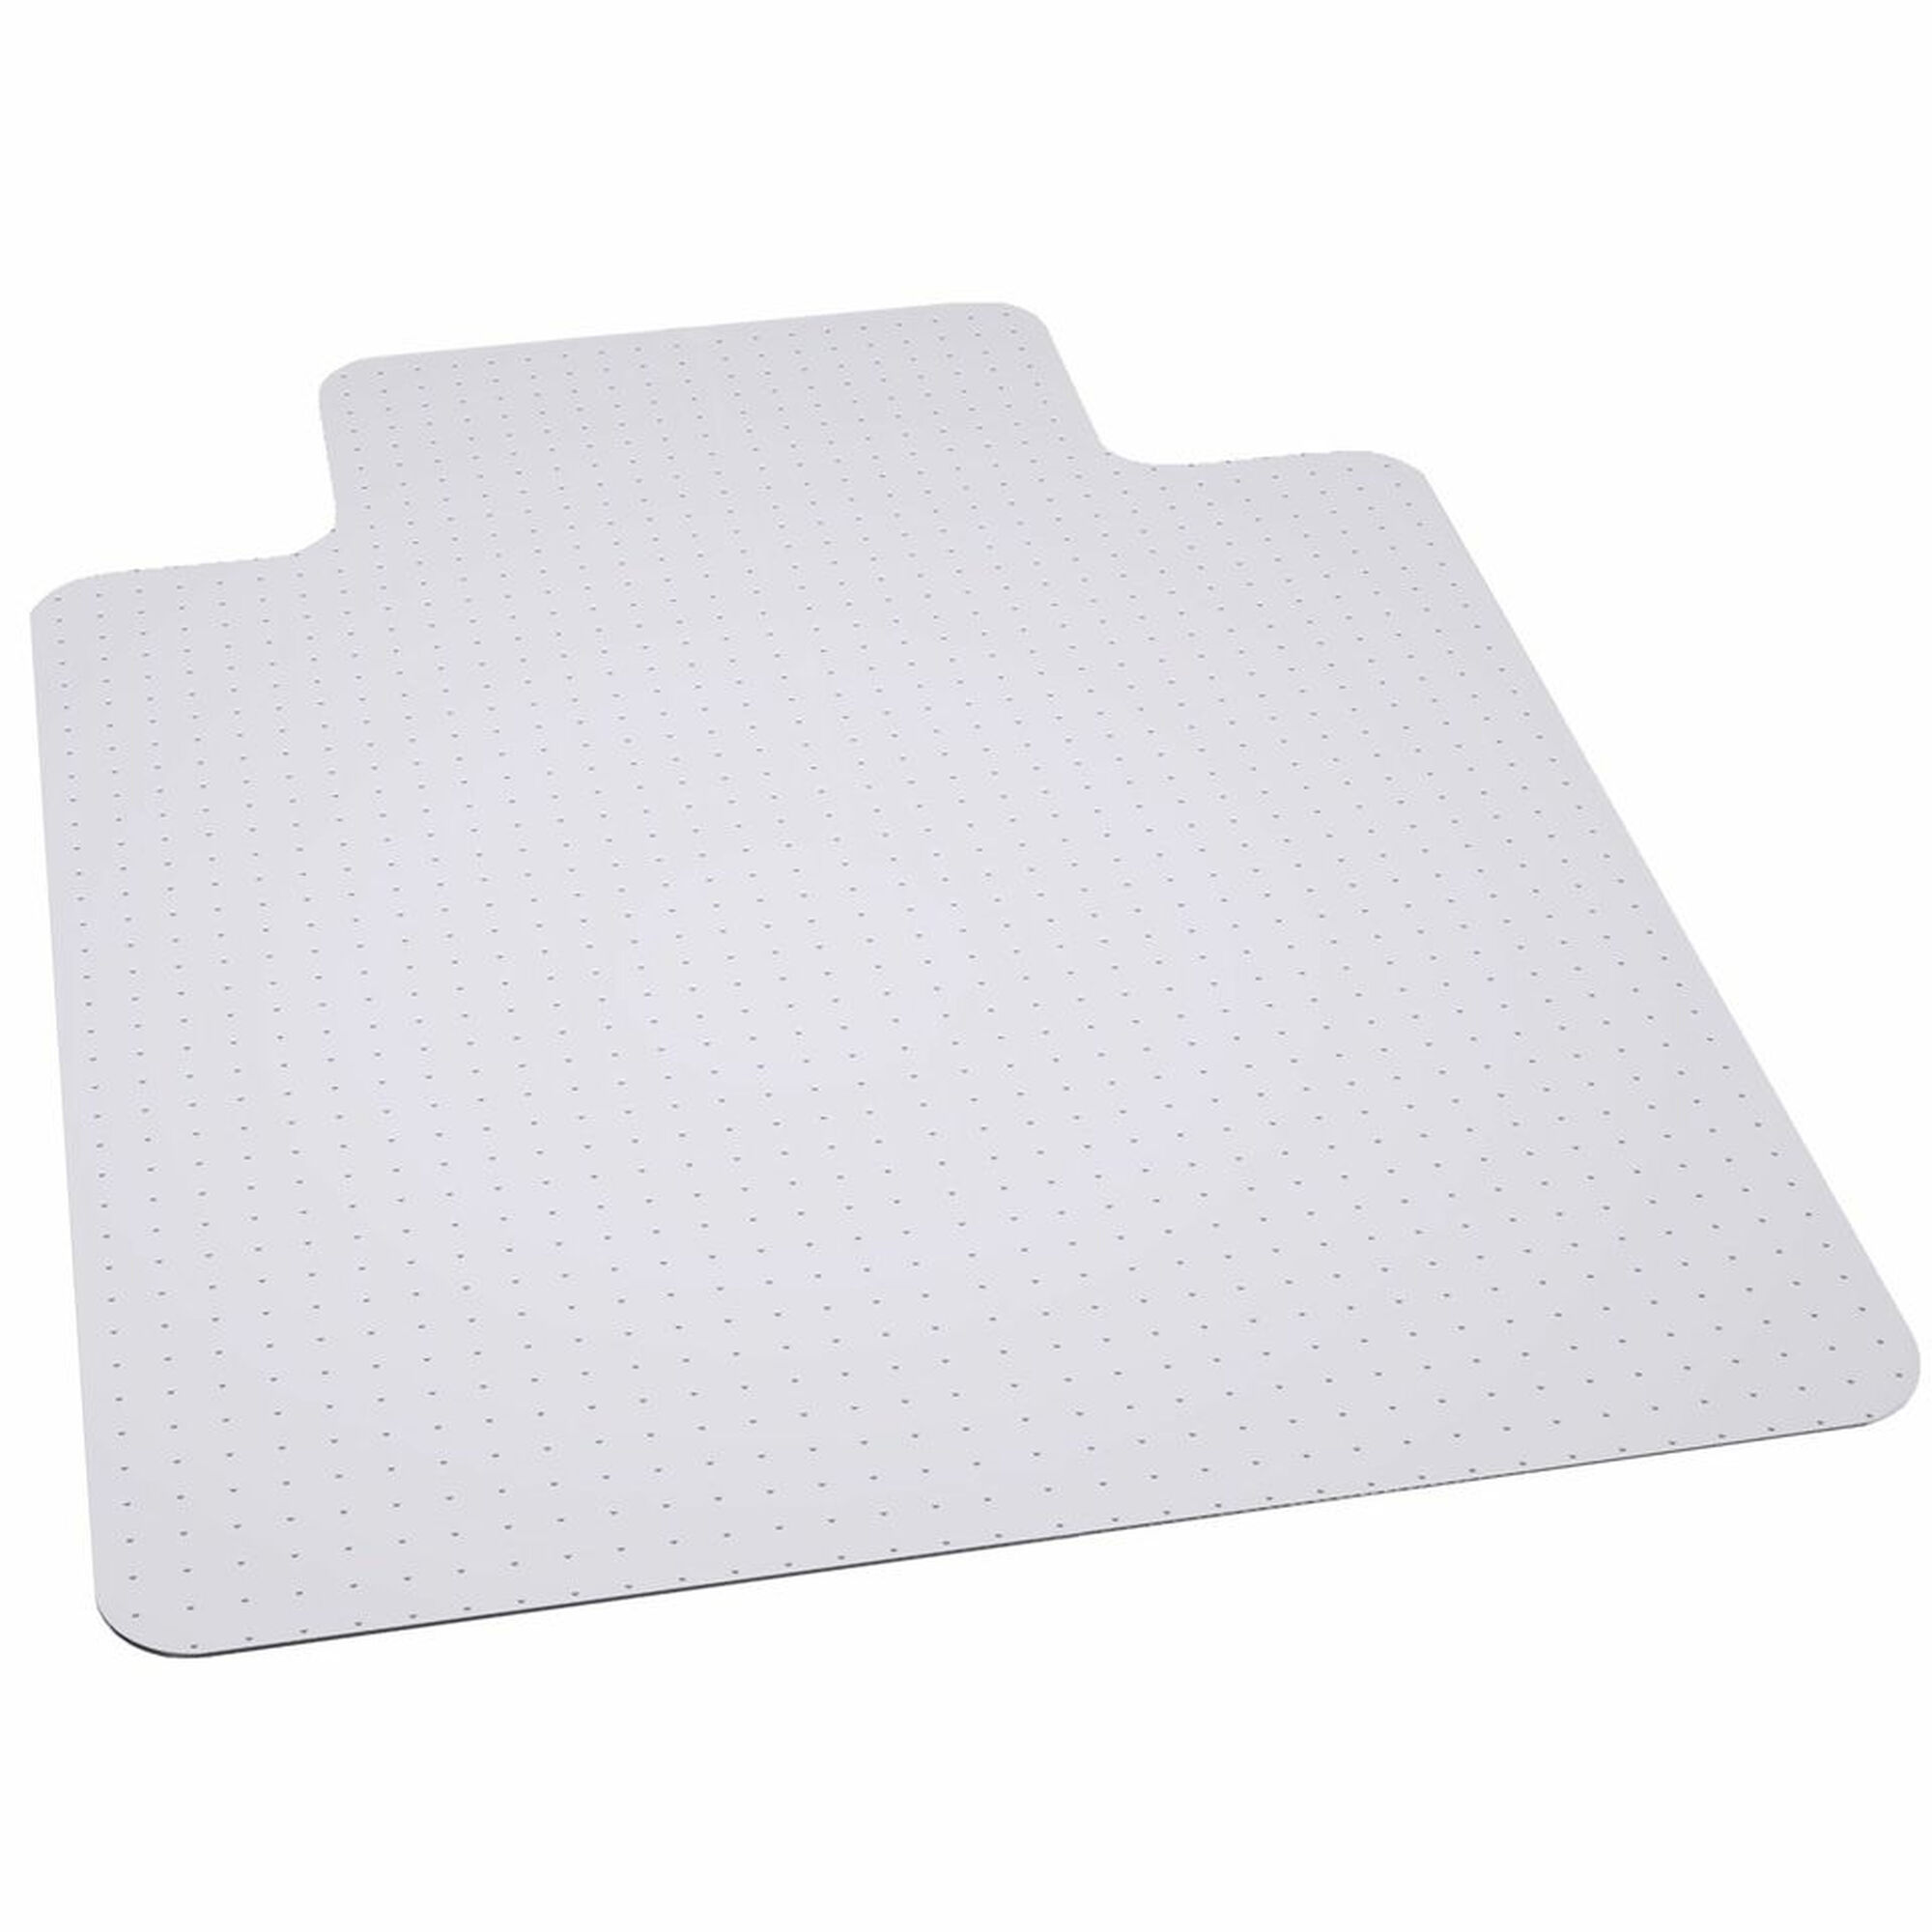 mat frugal diy wooden office mats fake it chair